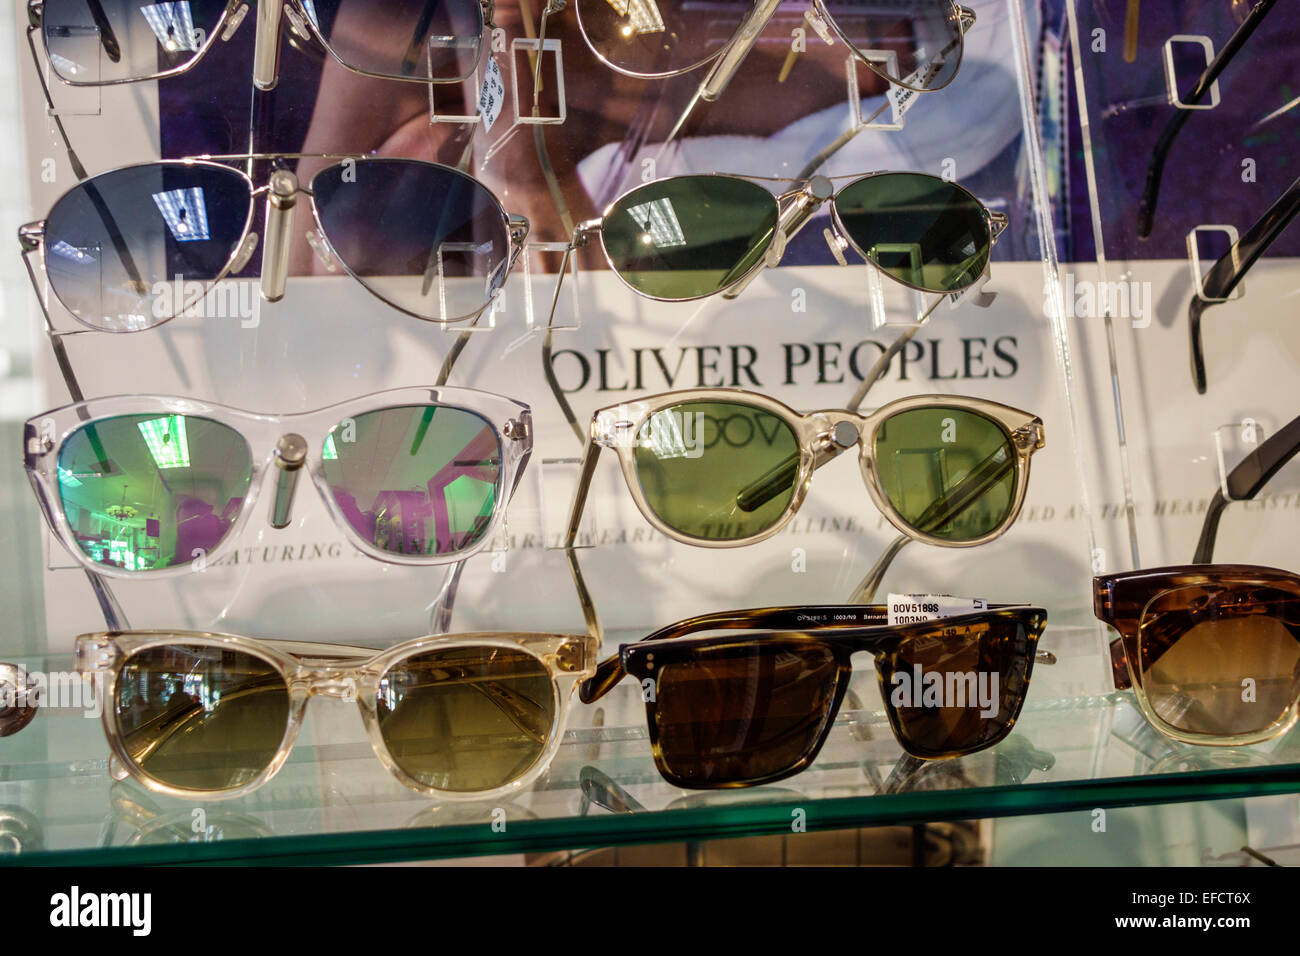 32da44b9c0 Miami Beach Florida man optician optometrist eyeglasses shopping sunglasses  Oliver Peoples